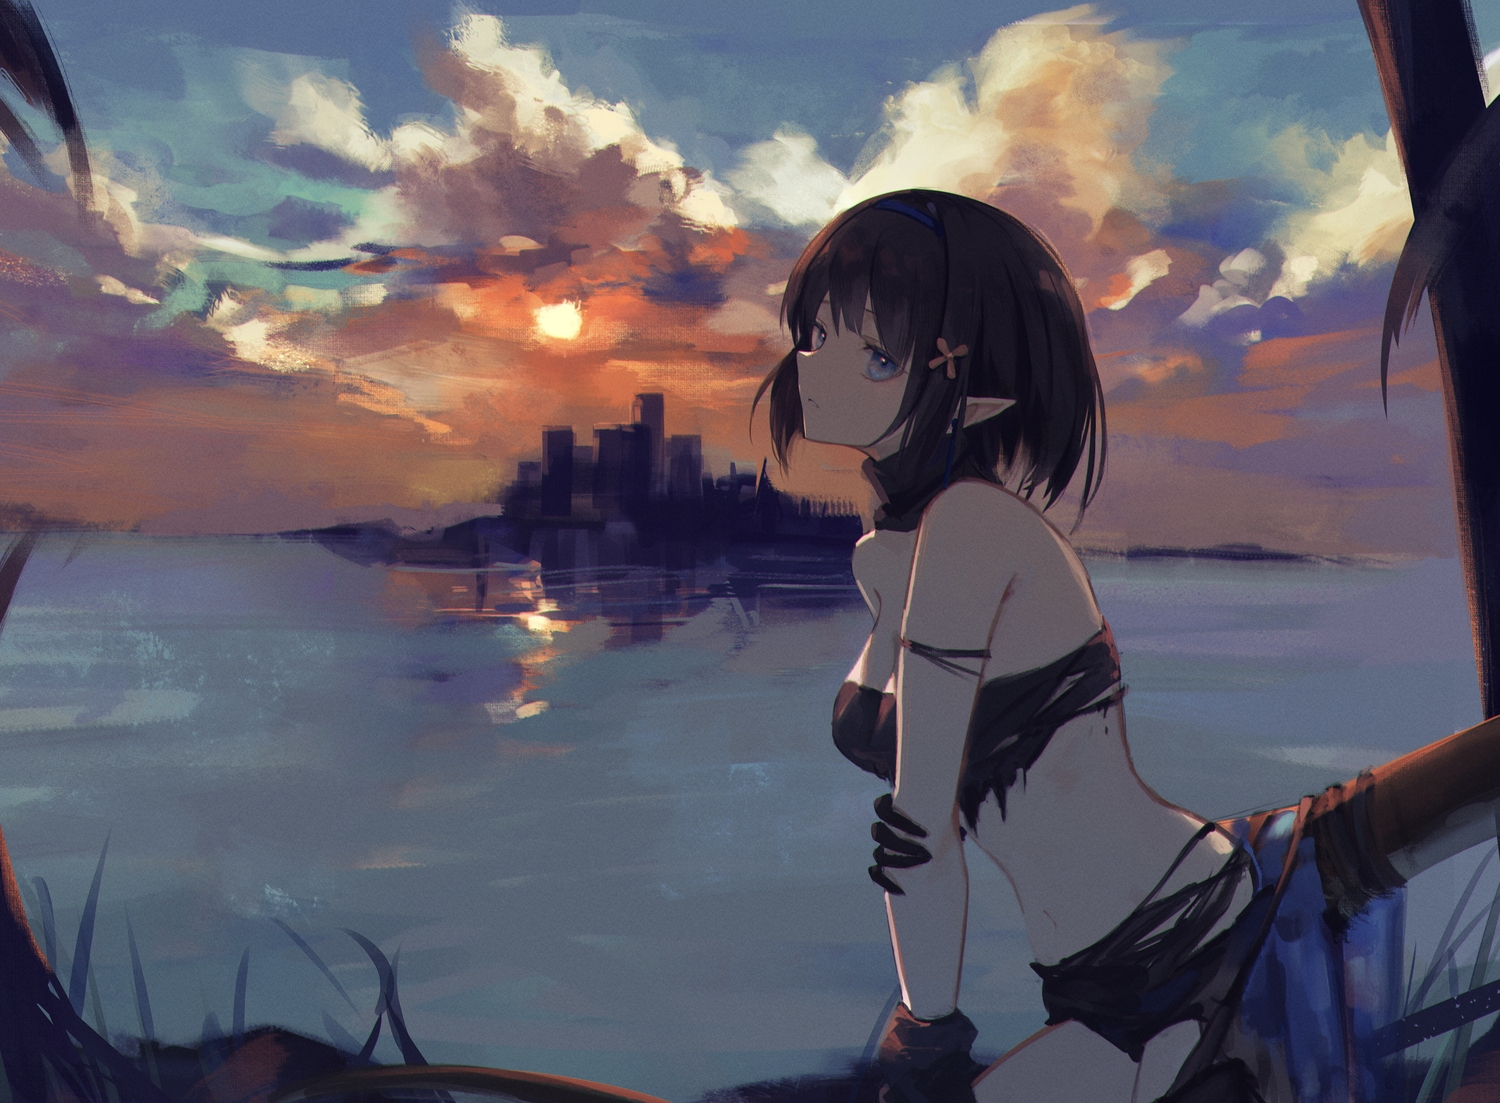 7ife arknights blue_eyes clouds dark eunectes_(arknights) pointed_ears sky sunset tail torn_clothes water